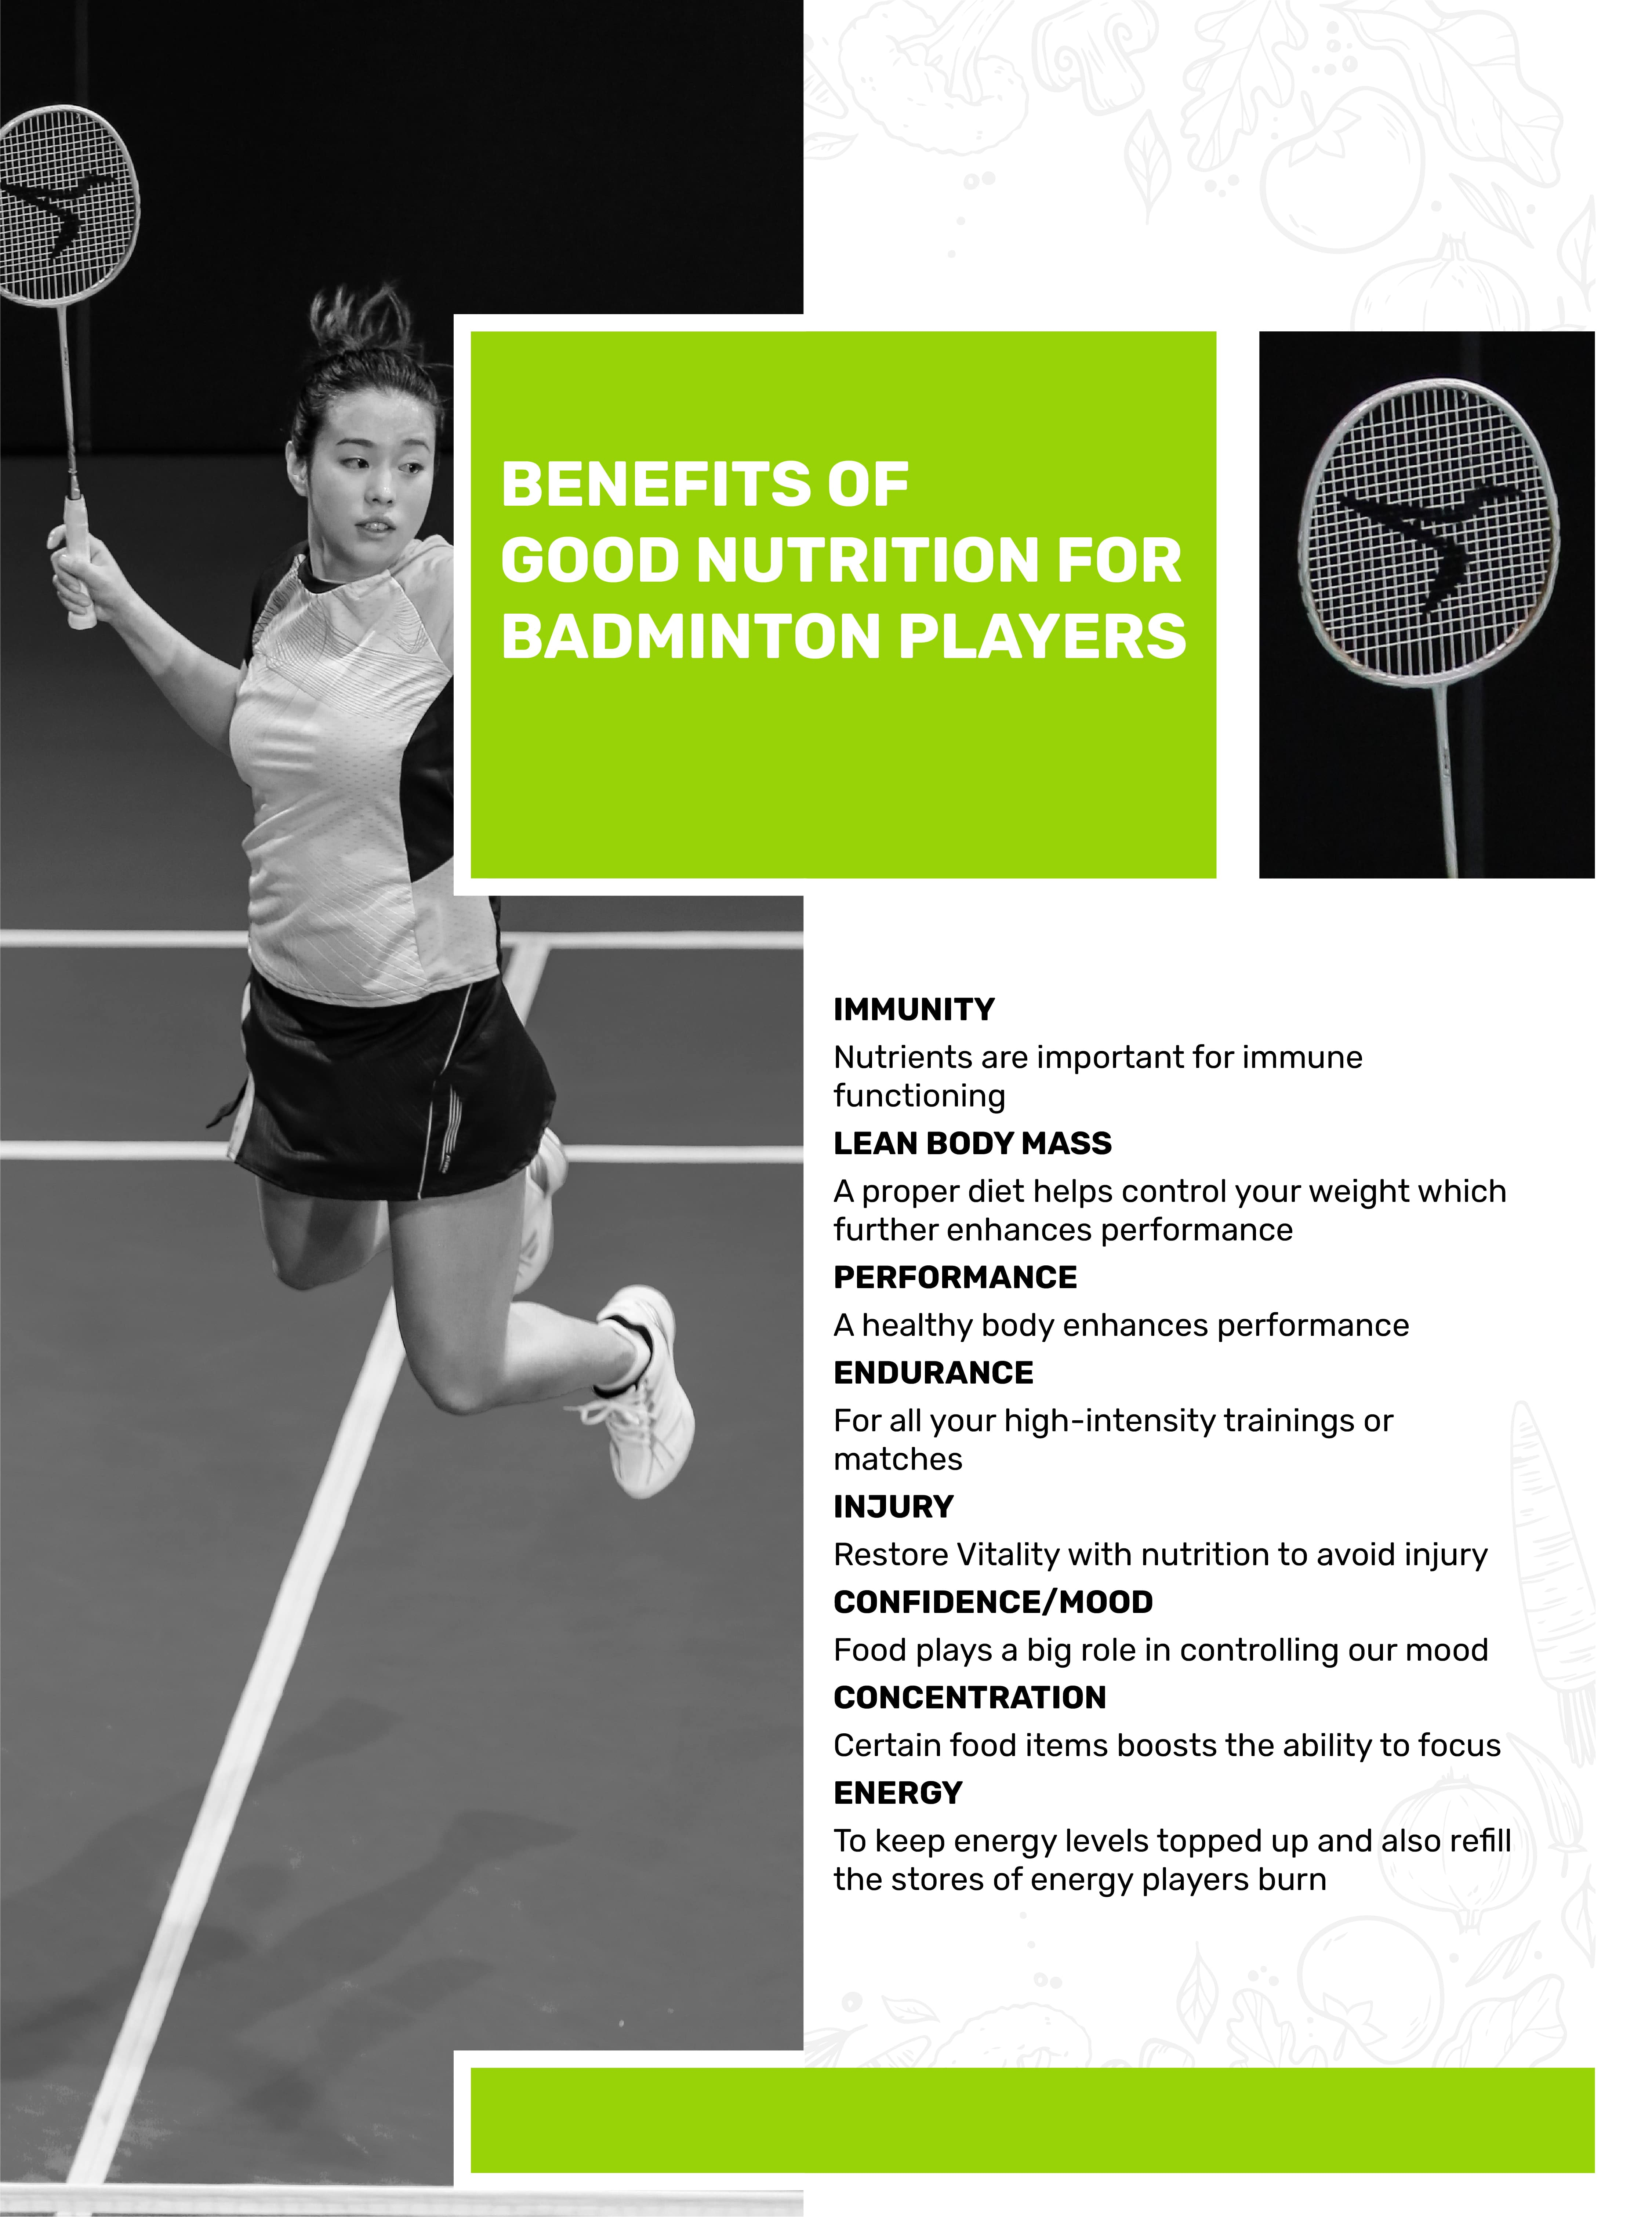 Benefits of Good Nutrition for Badminton Players